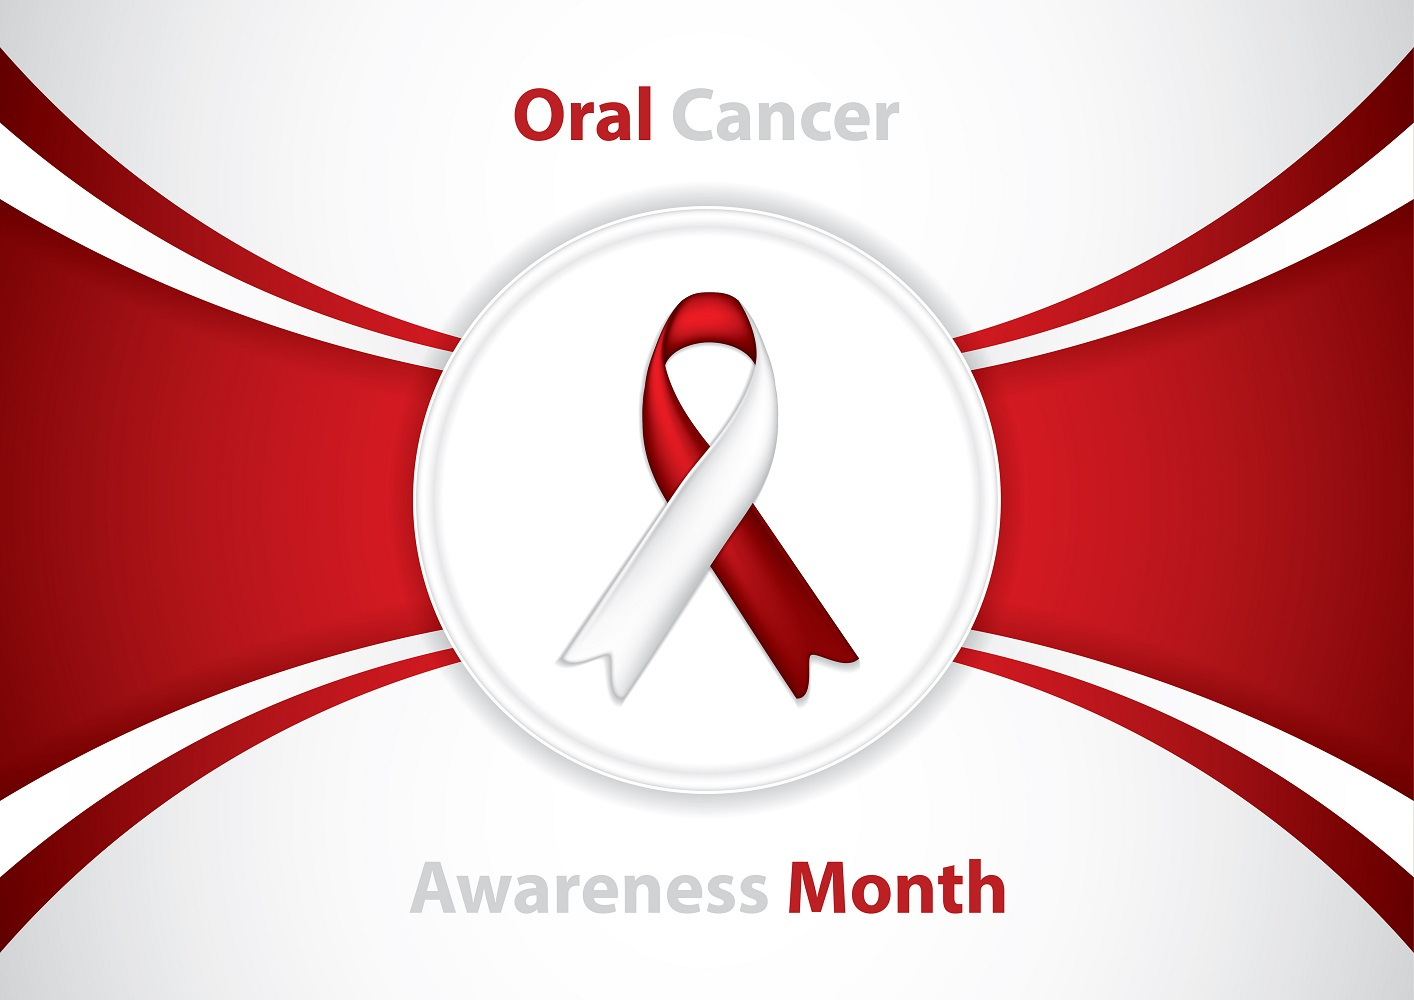 oral cancer-symptoms of oral cancer-throat cancer-dentist near me